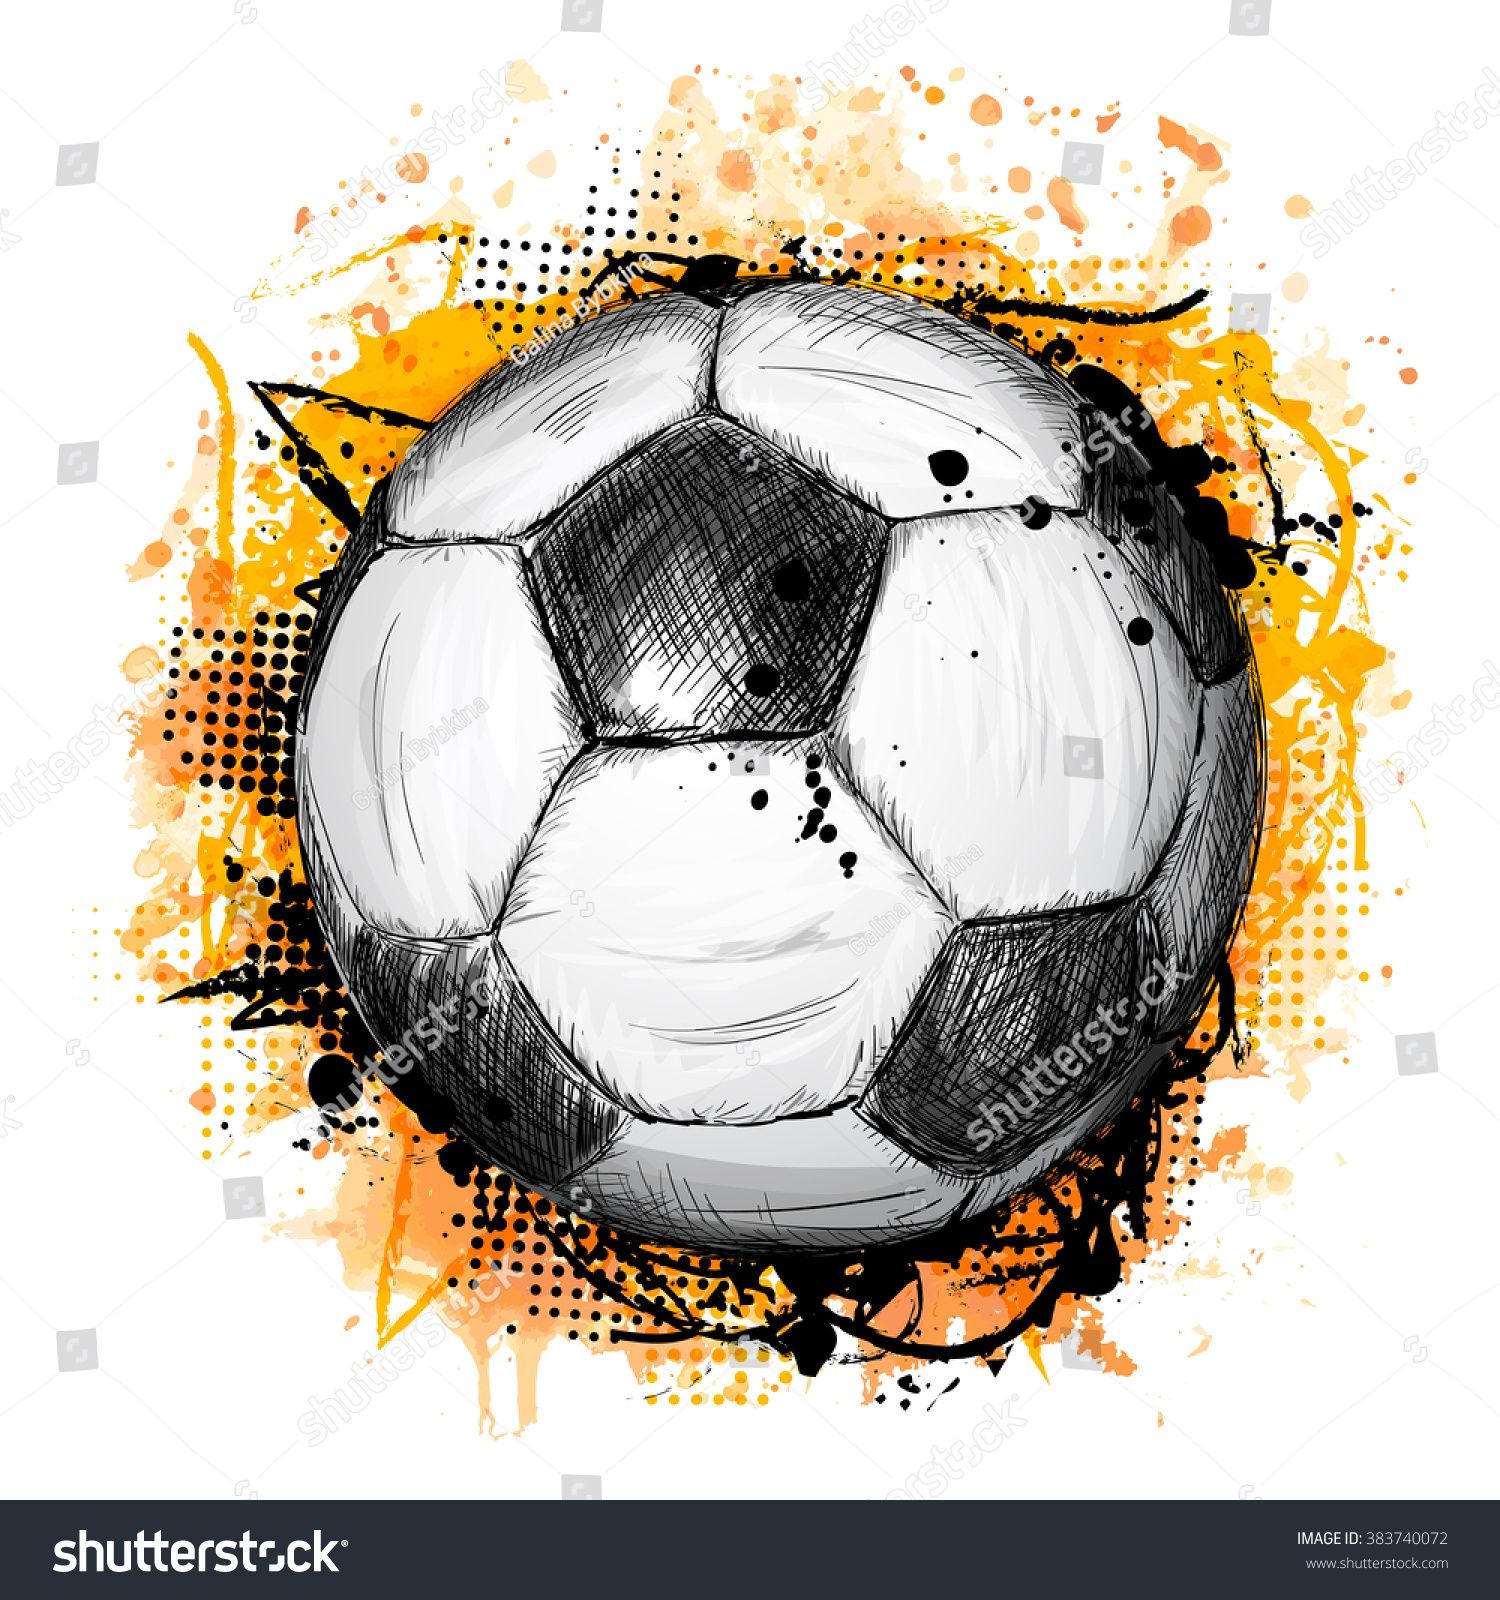 Download Hand Drawn Vector Illustration With Soccer Or Football Ball Grunge Composition And Orang Hand Drawn Vector Illustrations How To Draw Hands Vector Illustration